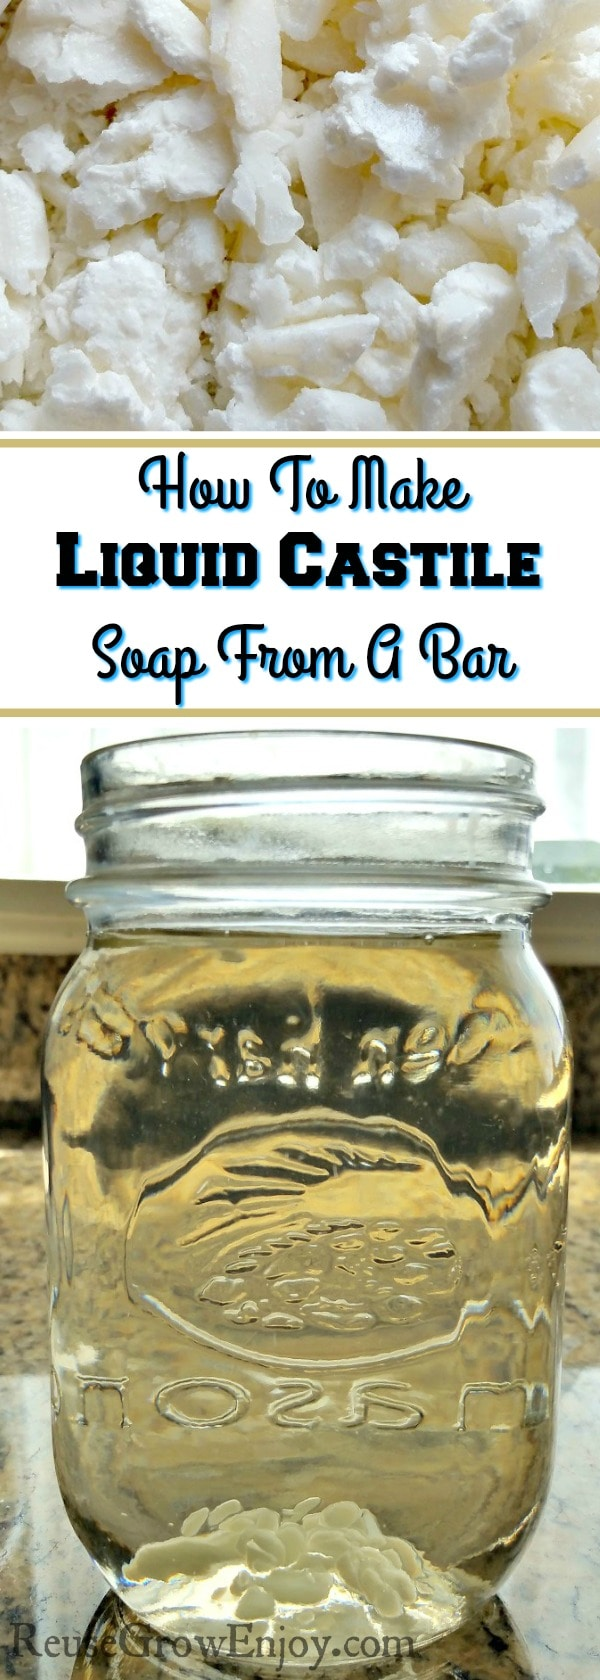 Like to use liquid castile soap but don't have it in the budget to buy it? I am going to show you How To Make Liquid Castile Soap From A Bar! It is SO much cheaper this way!